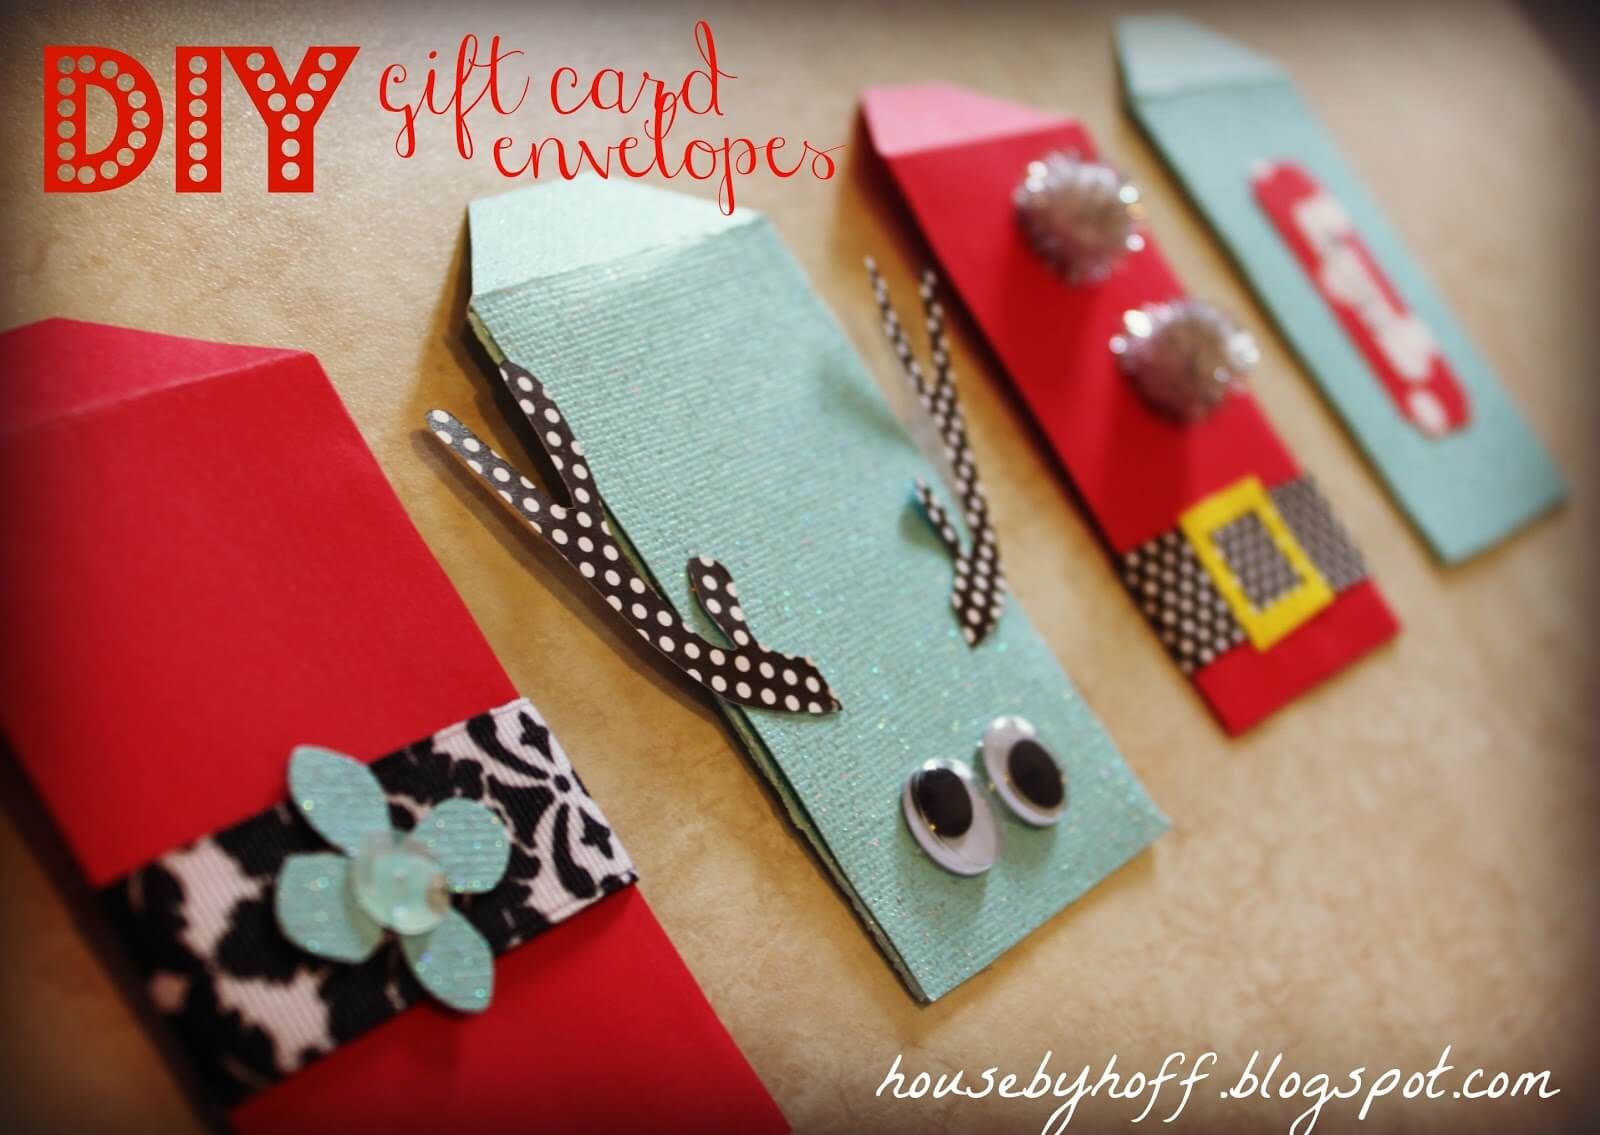 4-embellished-envelope-and-card